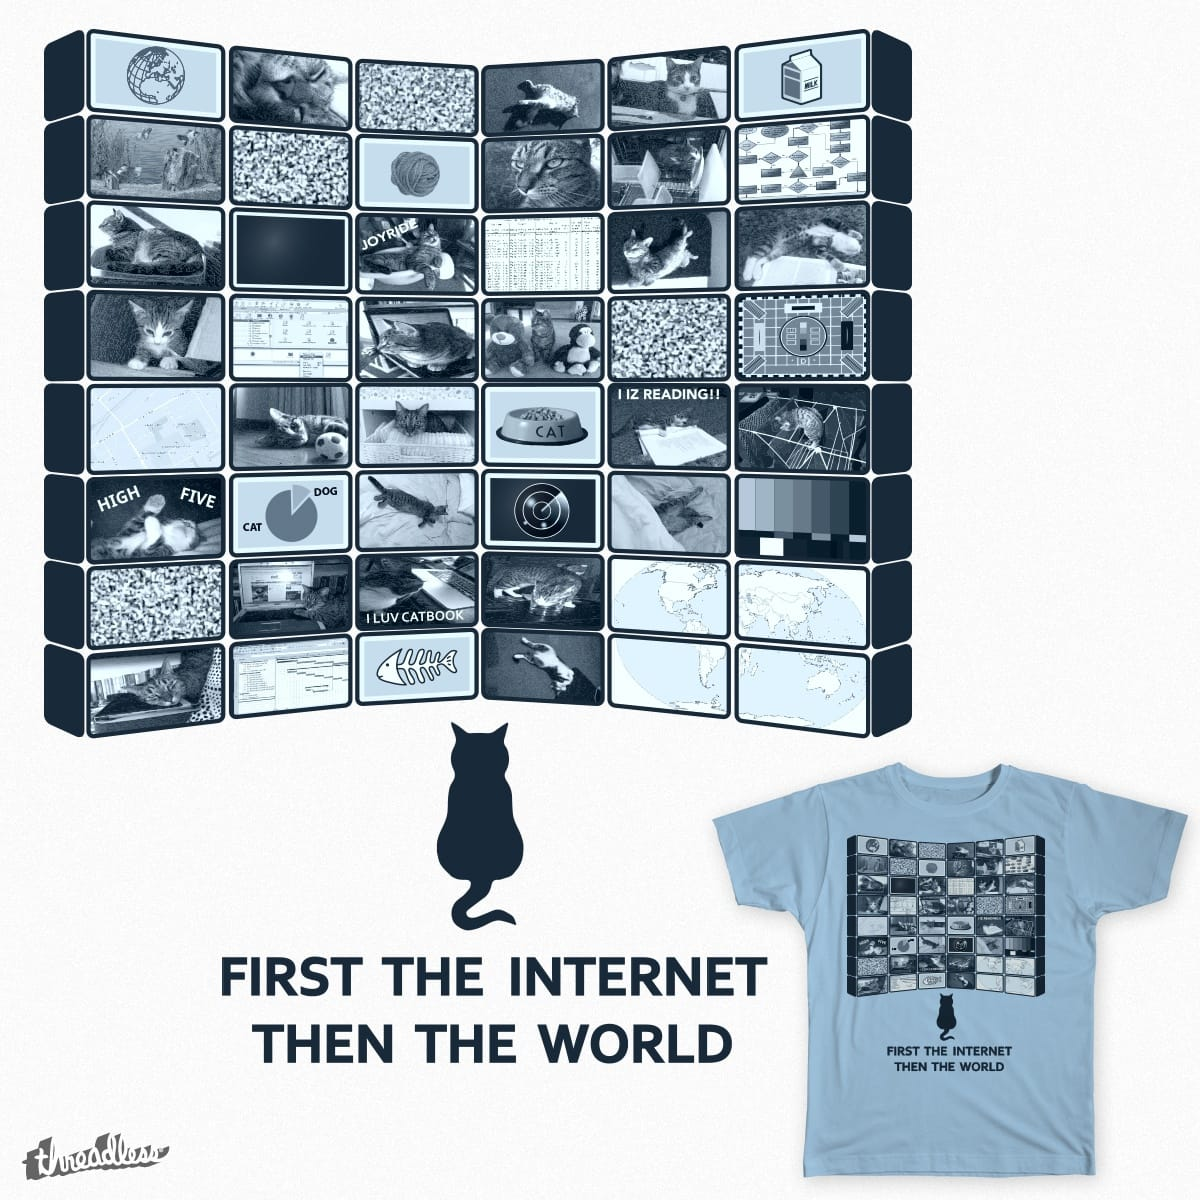 First the internet - then the world by sregorcinimod on Threadless